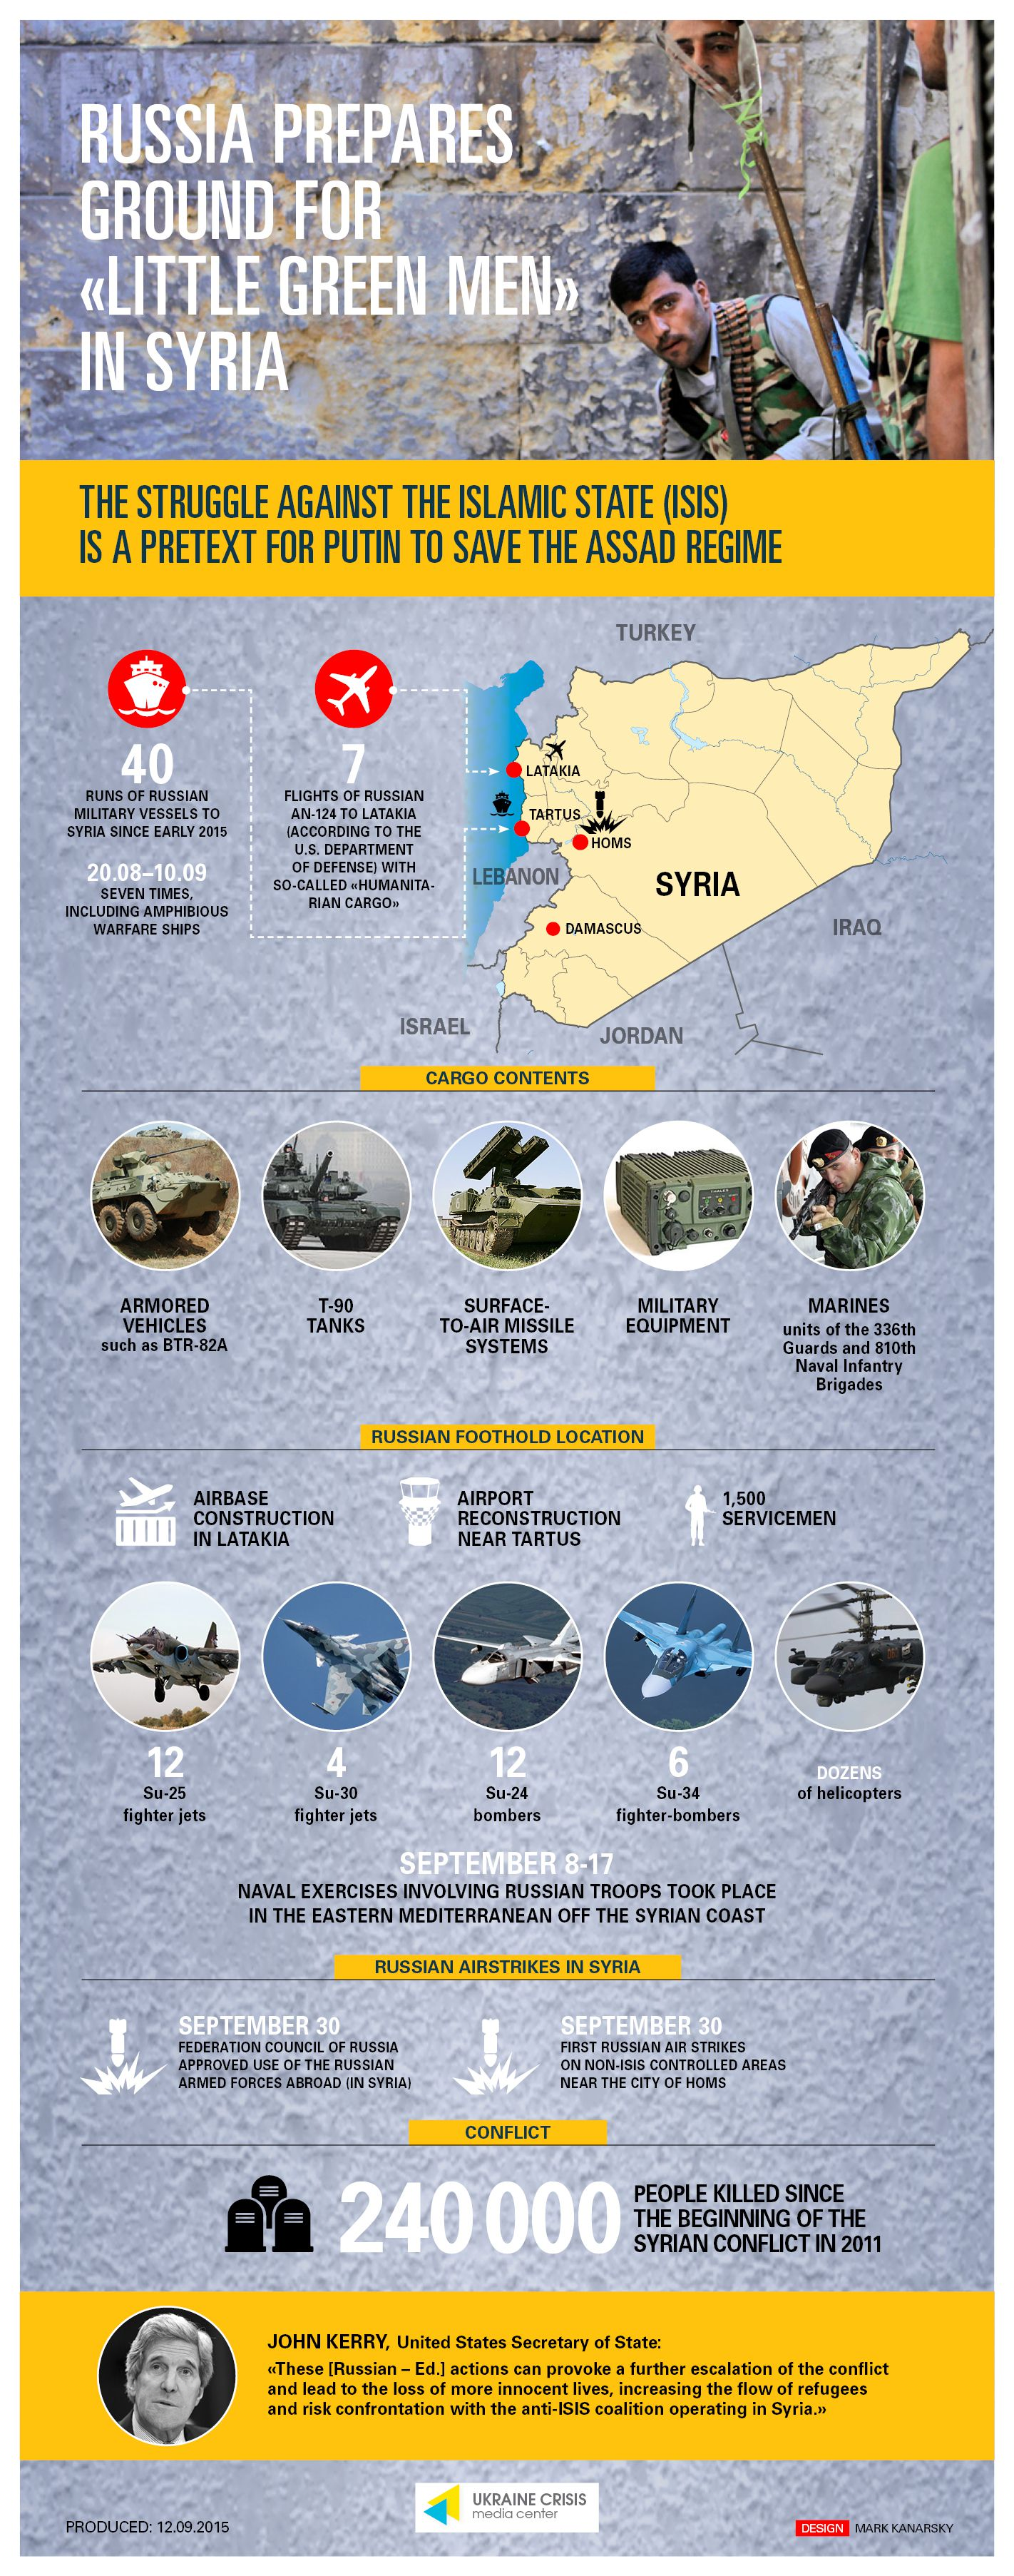 Russian military units in Syria